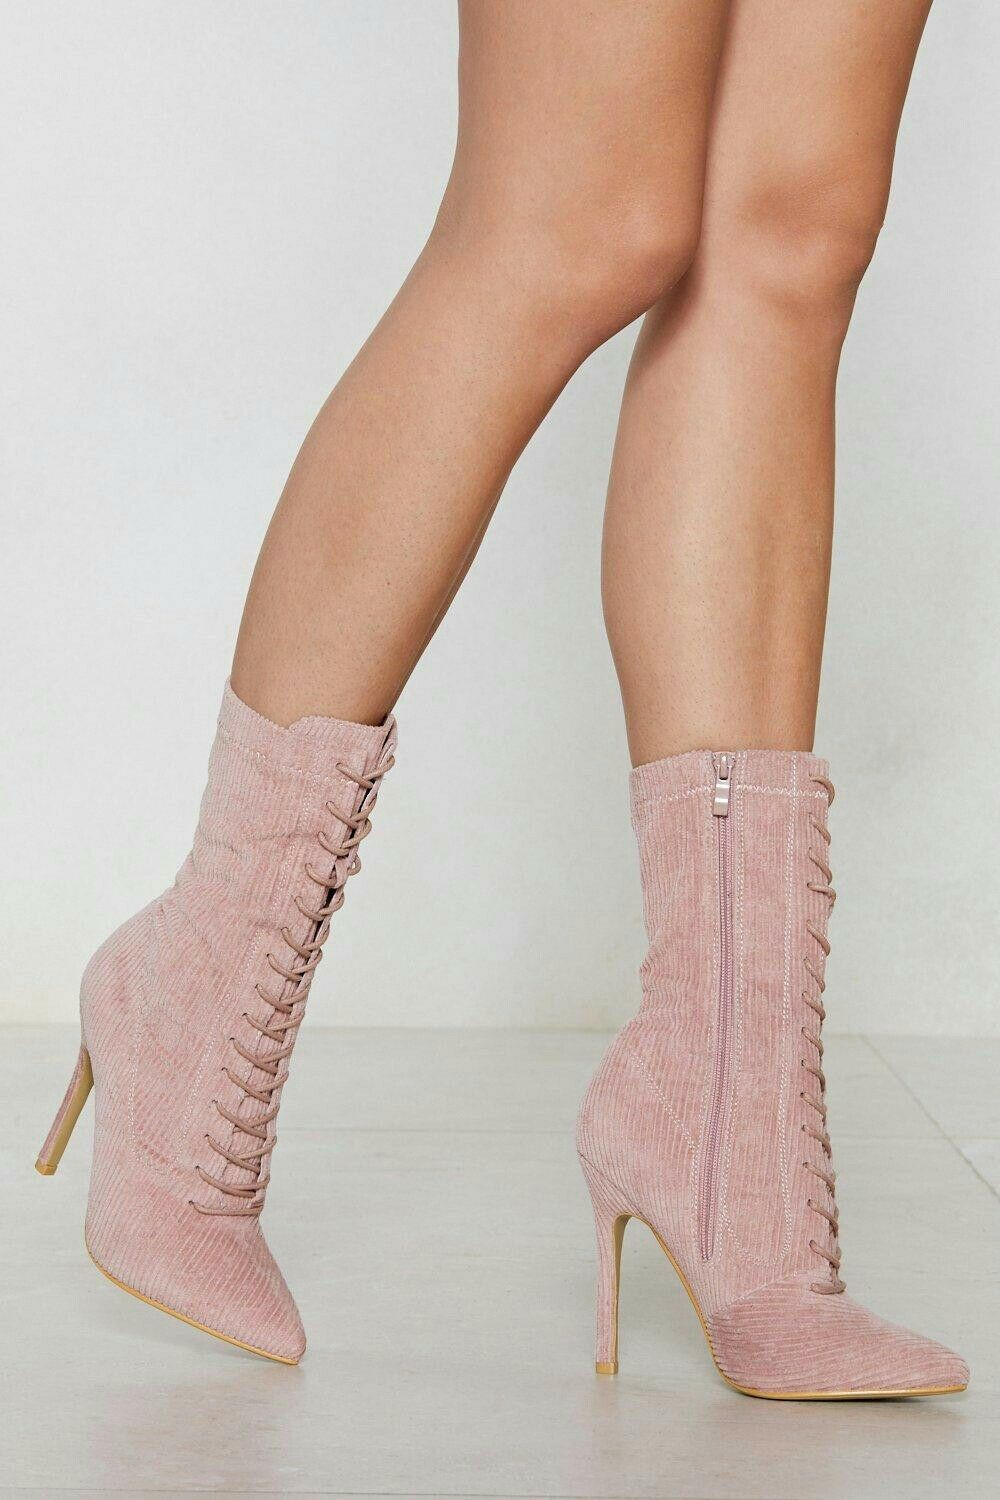 Nasty Gal Gal Gal Corduroy Lace Up Stiletto Heel Calf Boots bluesh Pink Women's Size UK 3 6df4a1